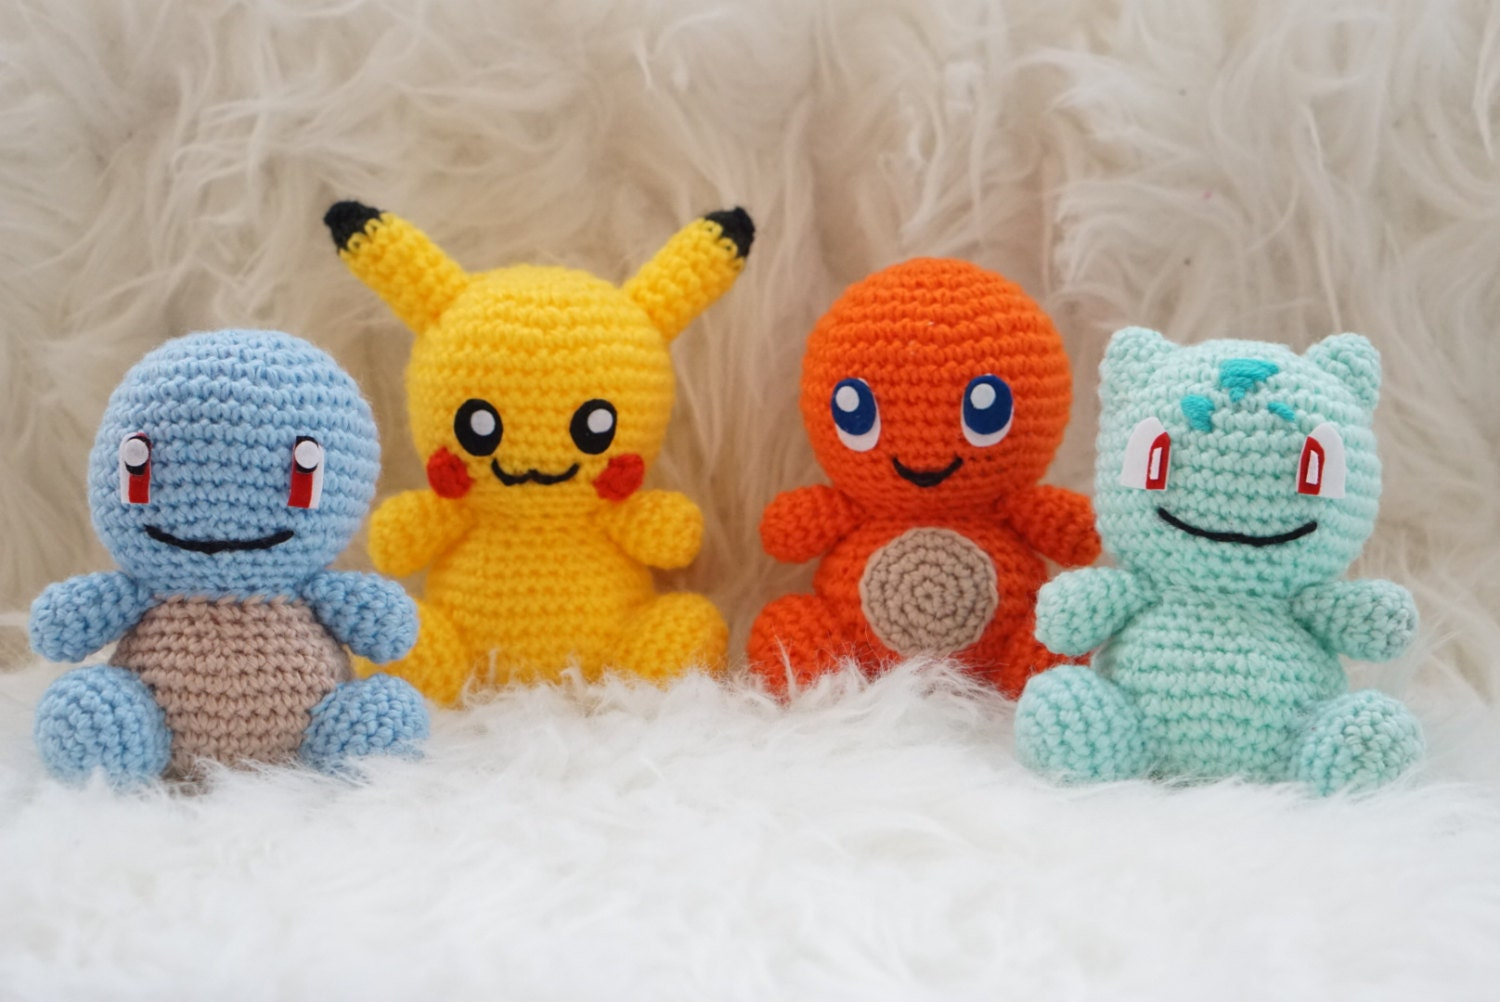 Pack 4 in 1 : Pikachu, Squirtle, Charmander and Bulbasaur Amigurumi ...